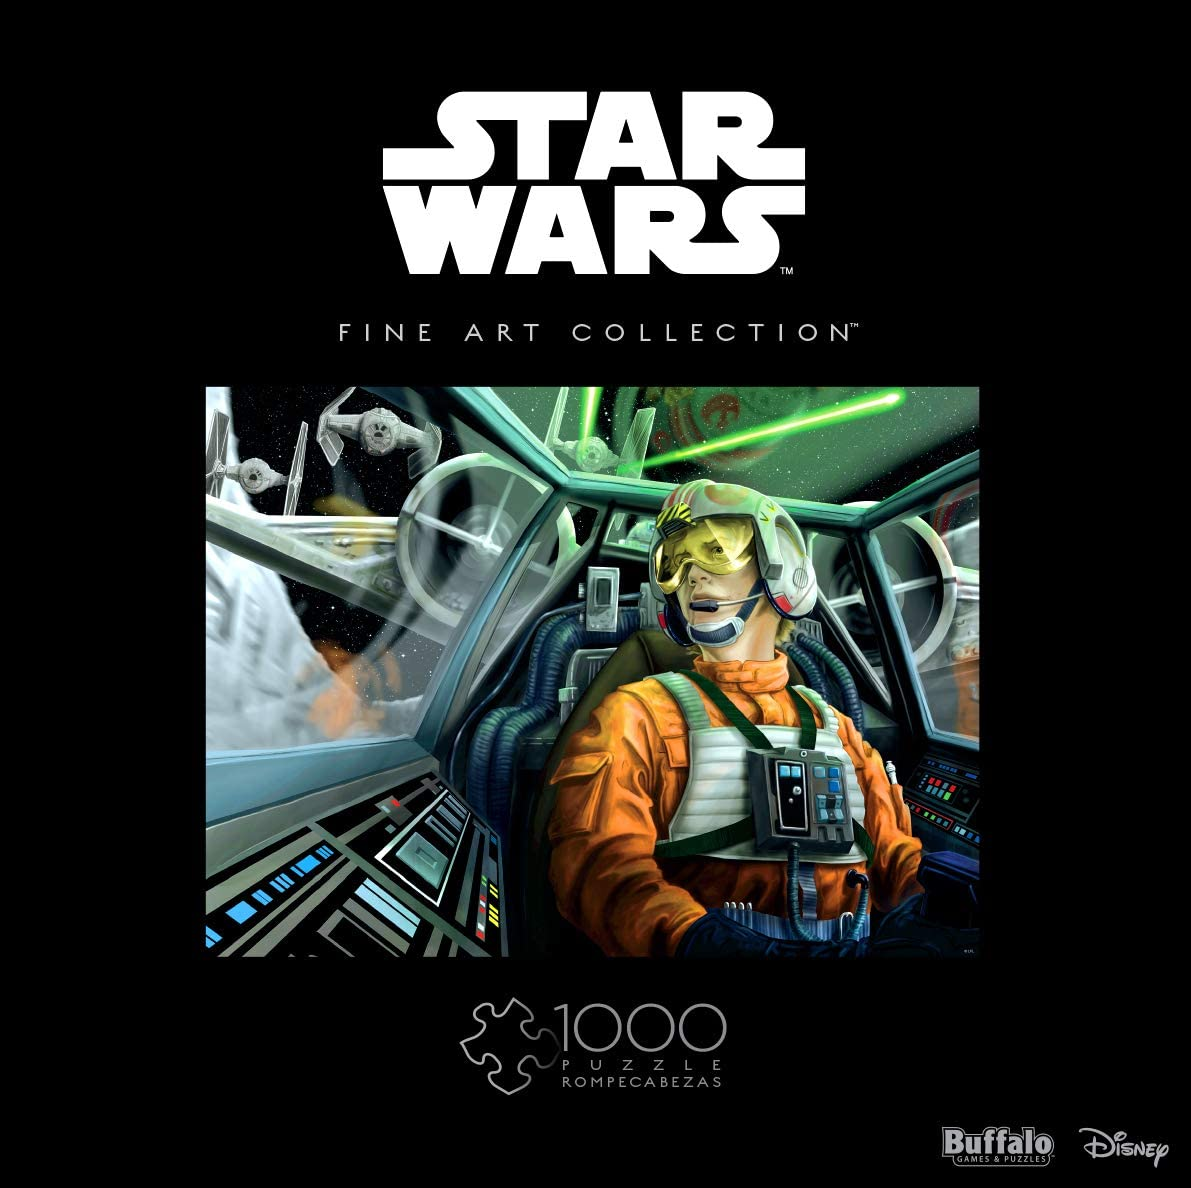 Star Wars Baptism by Fire   Puzzle Buffalo 1000 Piezas